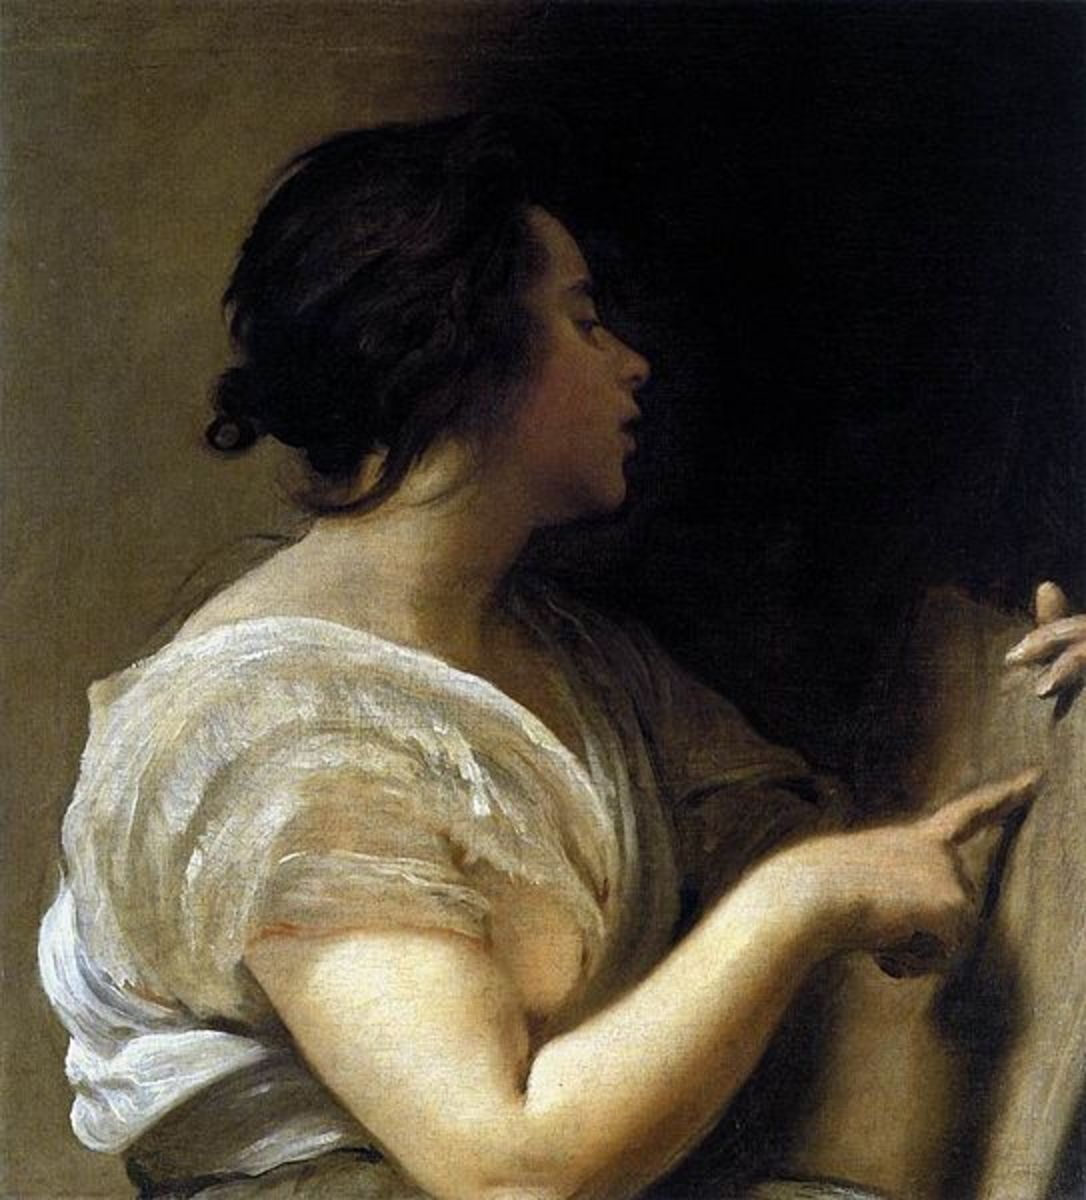 A detail from a painting by Diego Valaquez, showing the artist's impression of the beautiful weaver, Arachne.